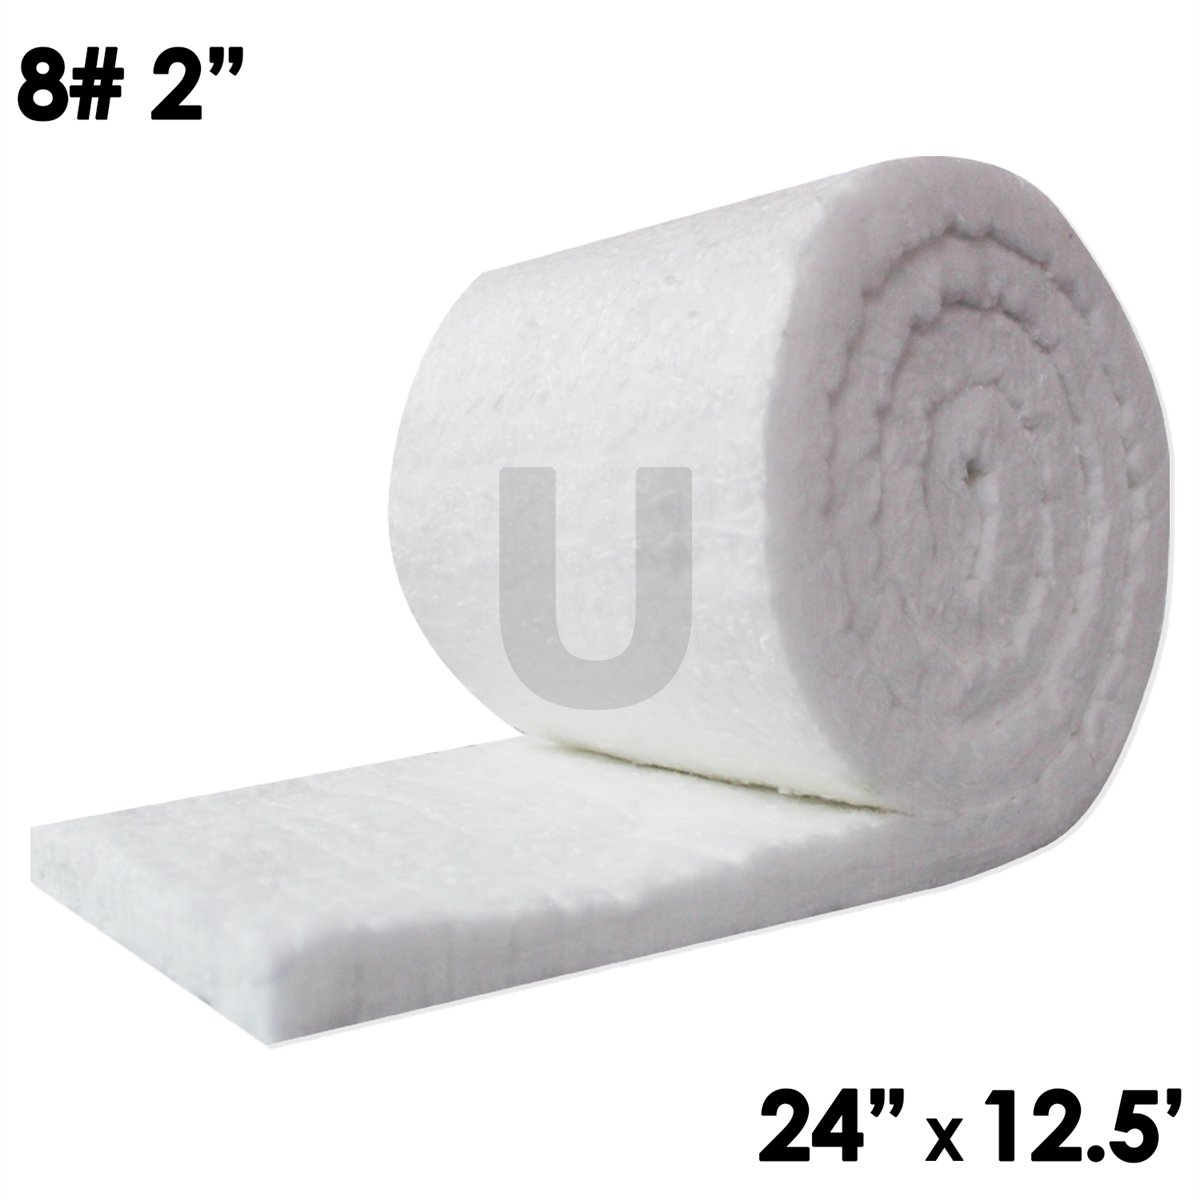 UniTherm Ceramic Fiber Insulation Blanket Roll, (8# Density, 2300°F)(2''x24''x12.5') for Kilns, Ovens, Furnaces, Forges, Stoves and More!